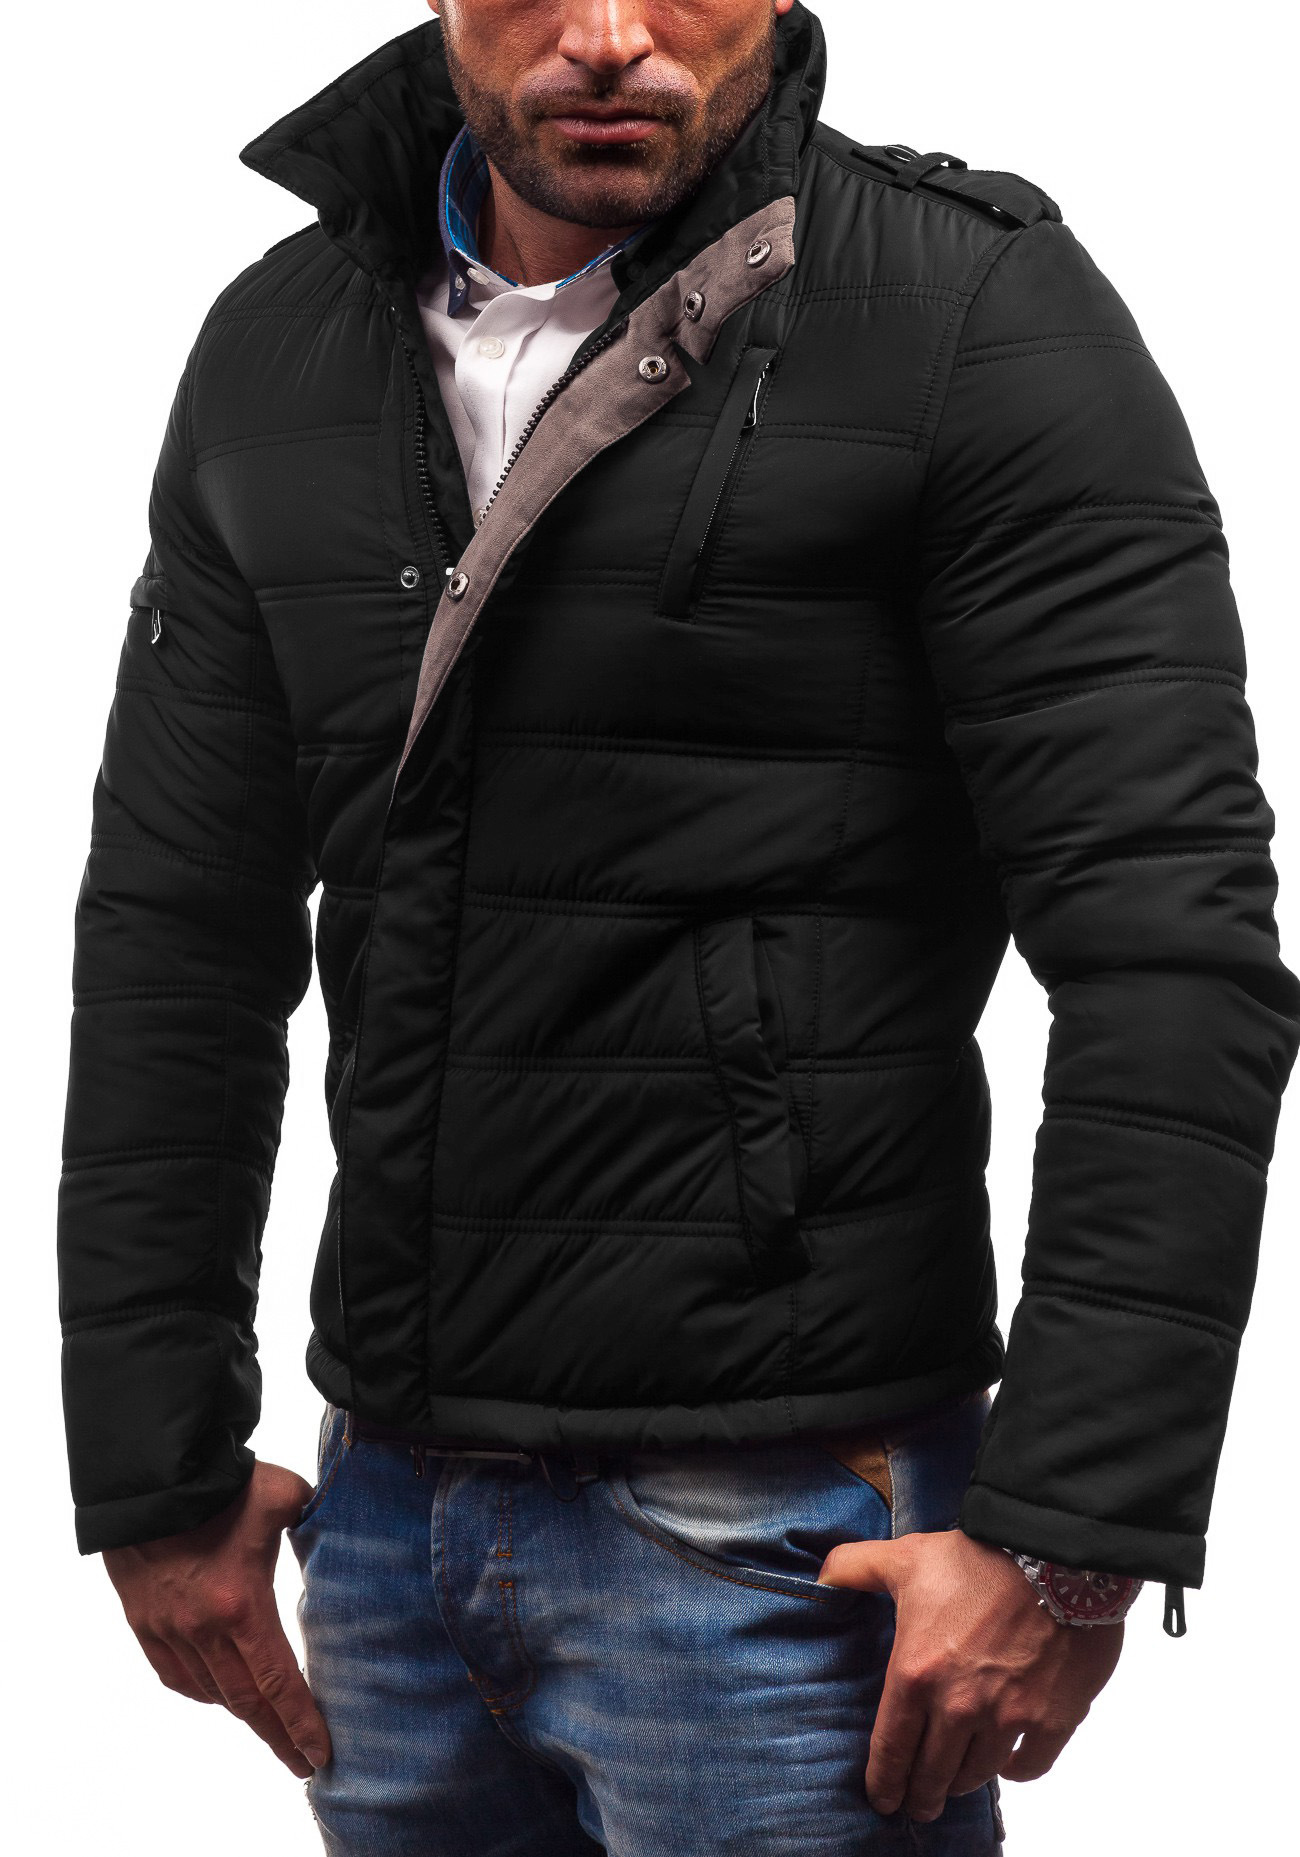 Aowofs High Quality Winter New Style Waterproof Stand Collar Europe And America Slim Fit Thick Warm Cotton Overcoat D010